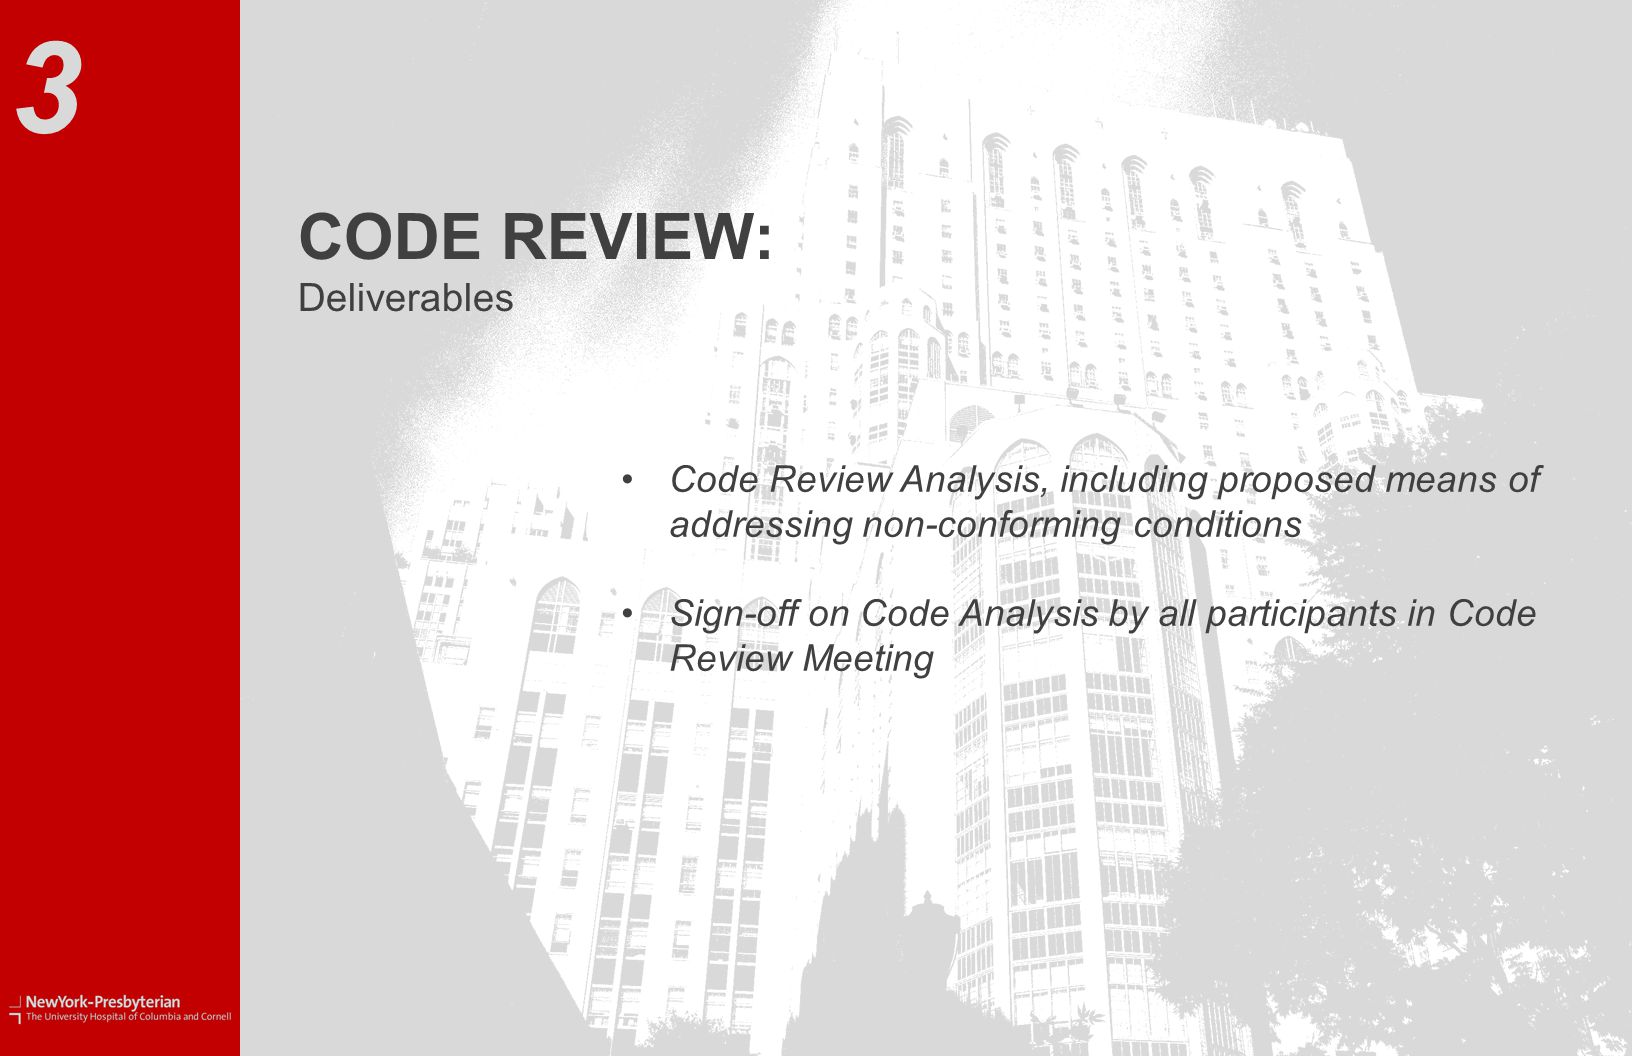 CODE REVIEW: Deliverables Code Review Analysis, including proposed means of addressing non-conforming conditions Sign-off on Code Analysis by all participants in Code Review Meeting 3